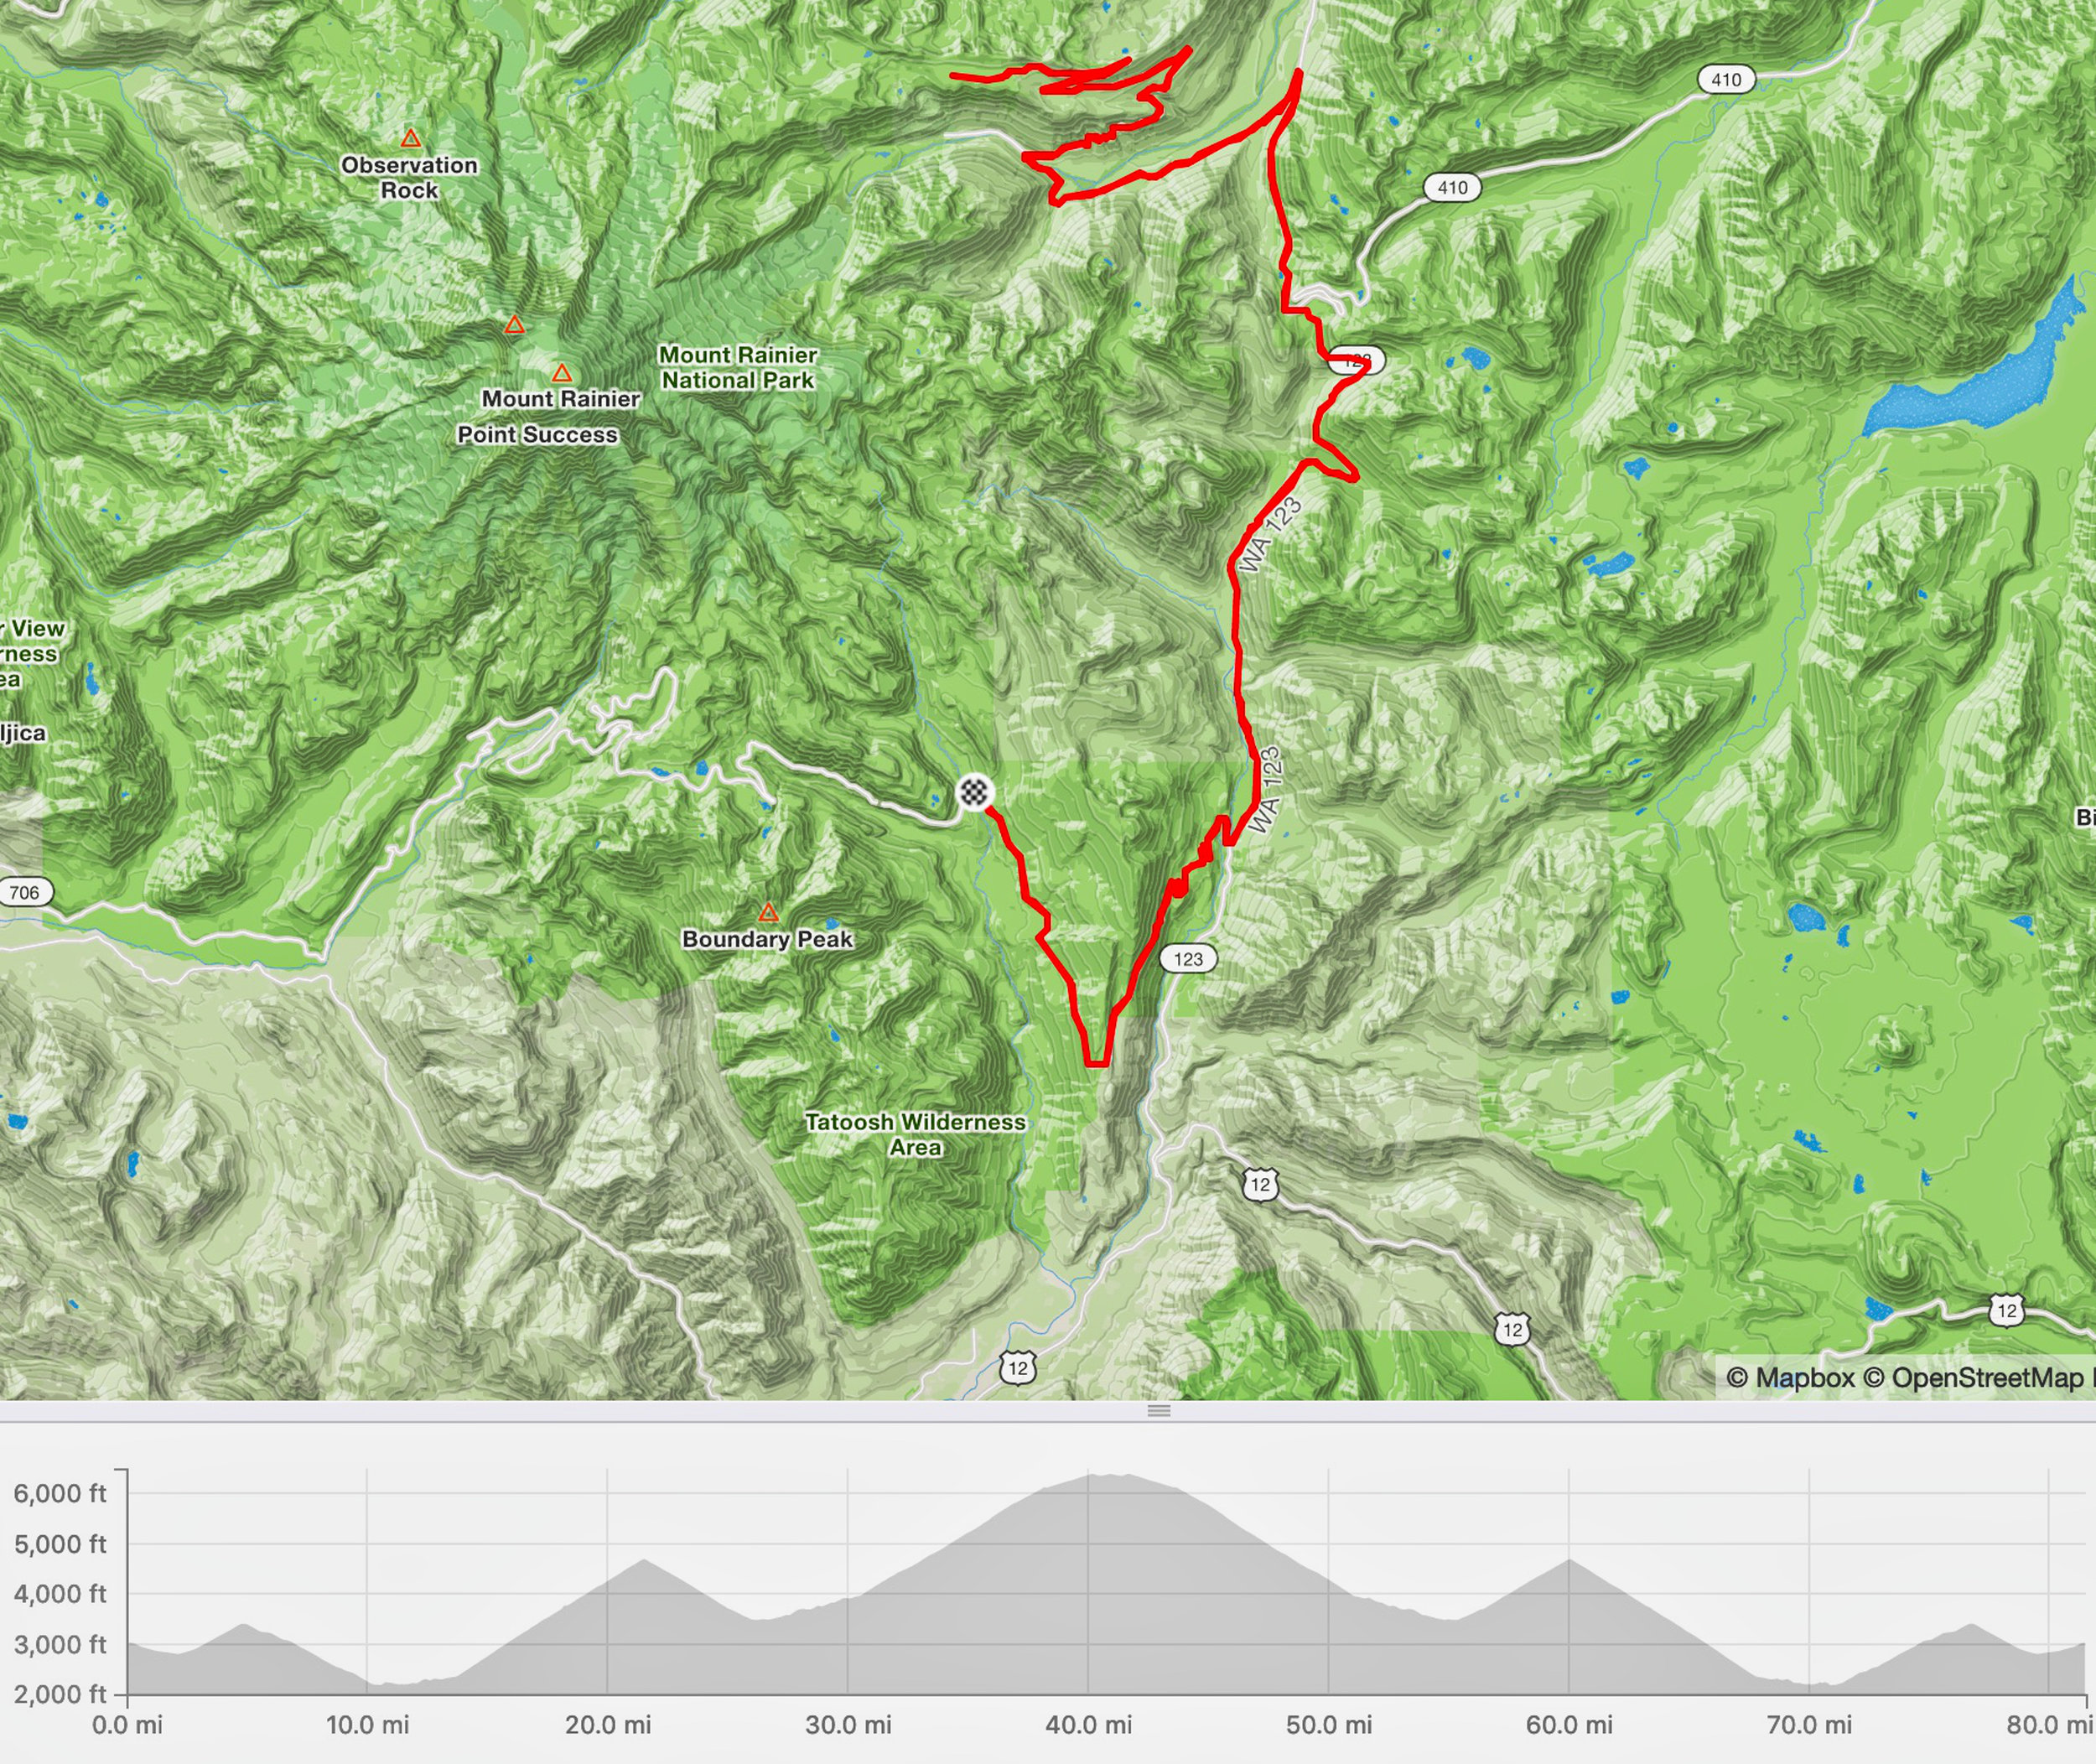 Course and climbs, starting and ending at Box Canyon (RIMROBOD Short Course: 81 miles/9200')